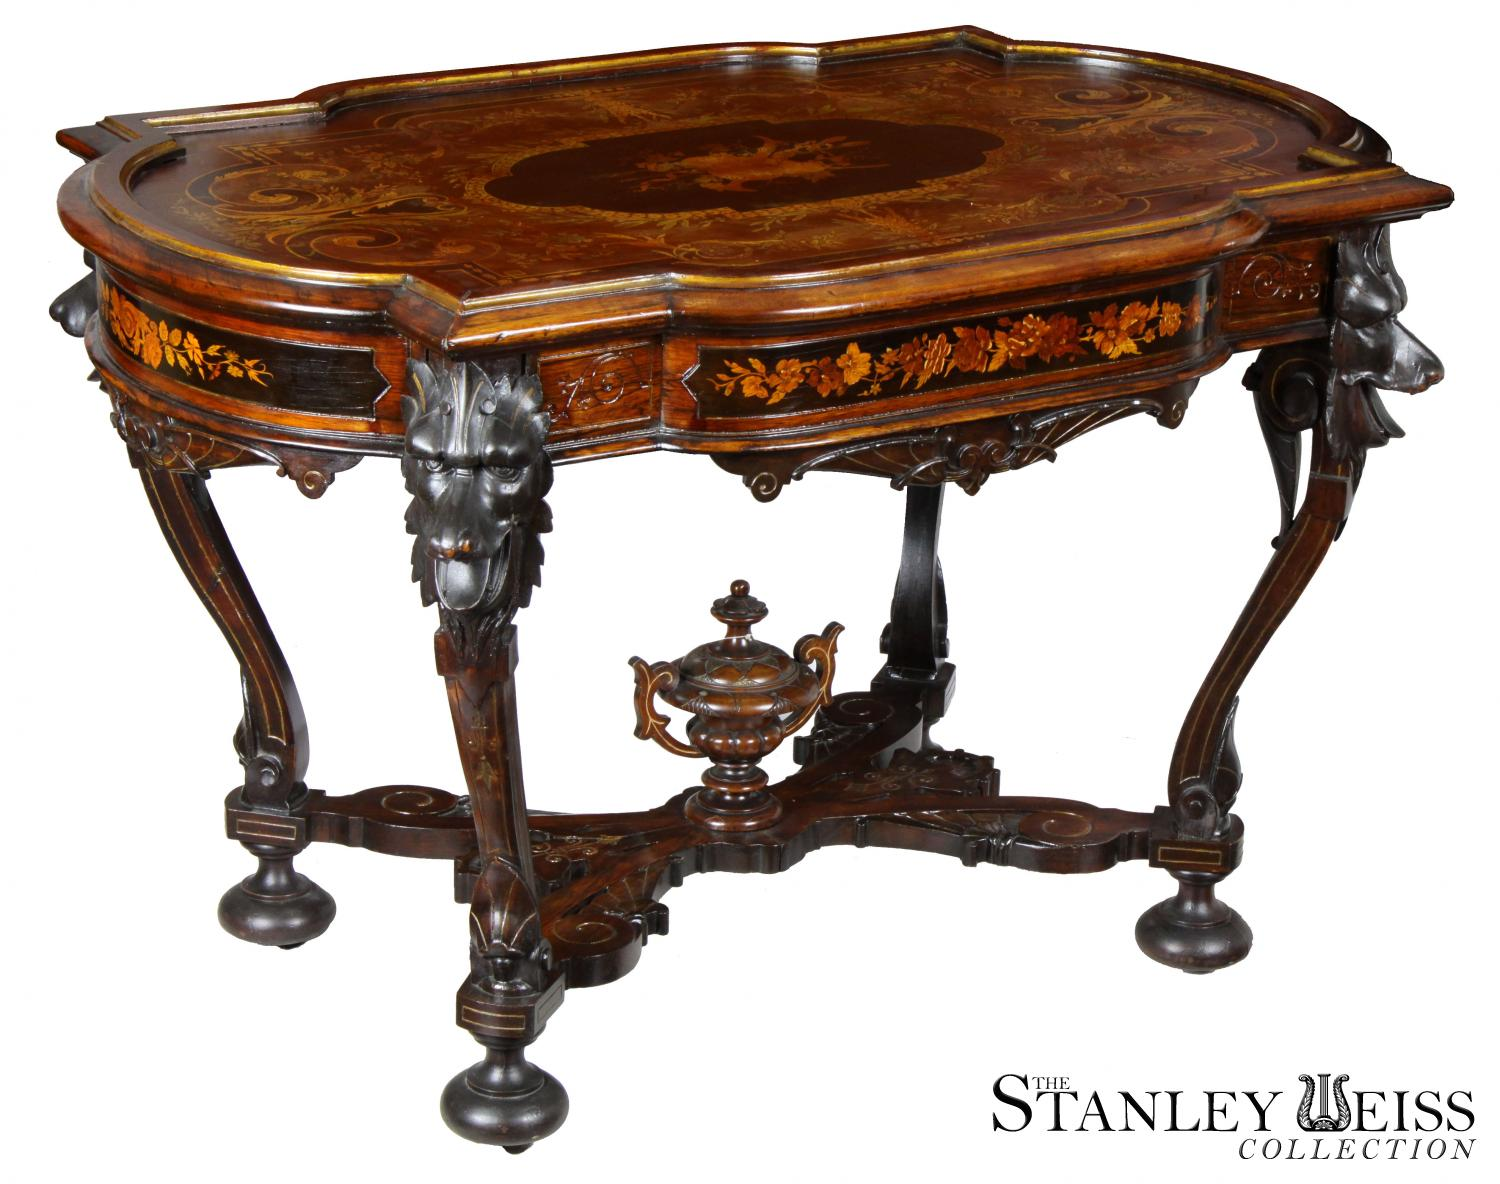 A Rare Walnut Inlaid Renaissance Revival Center Table With